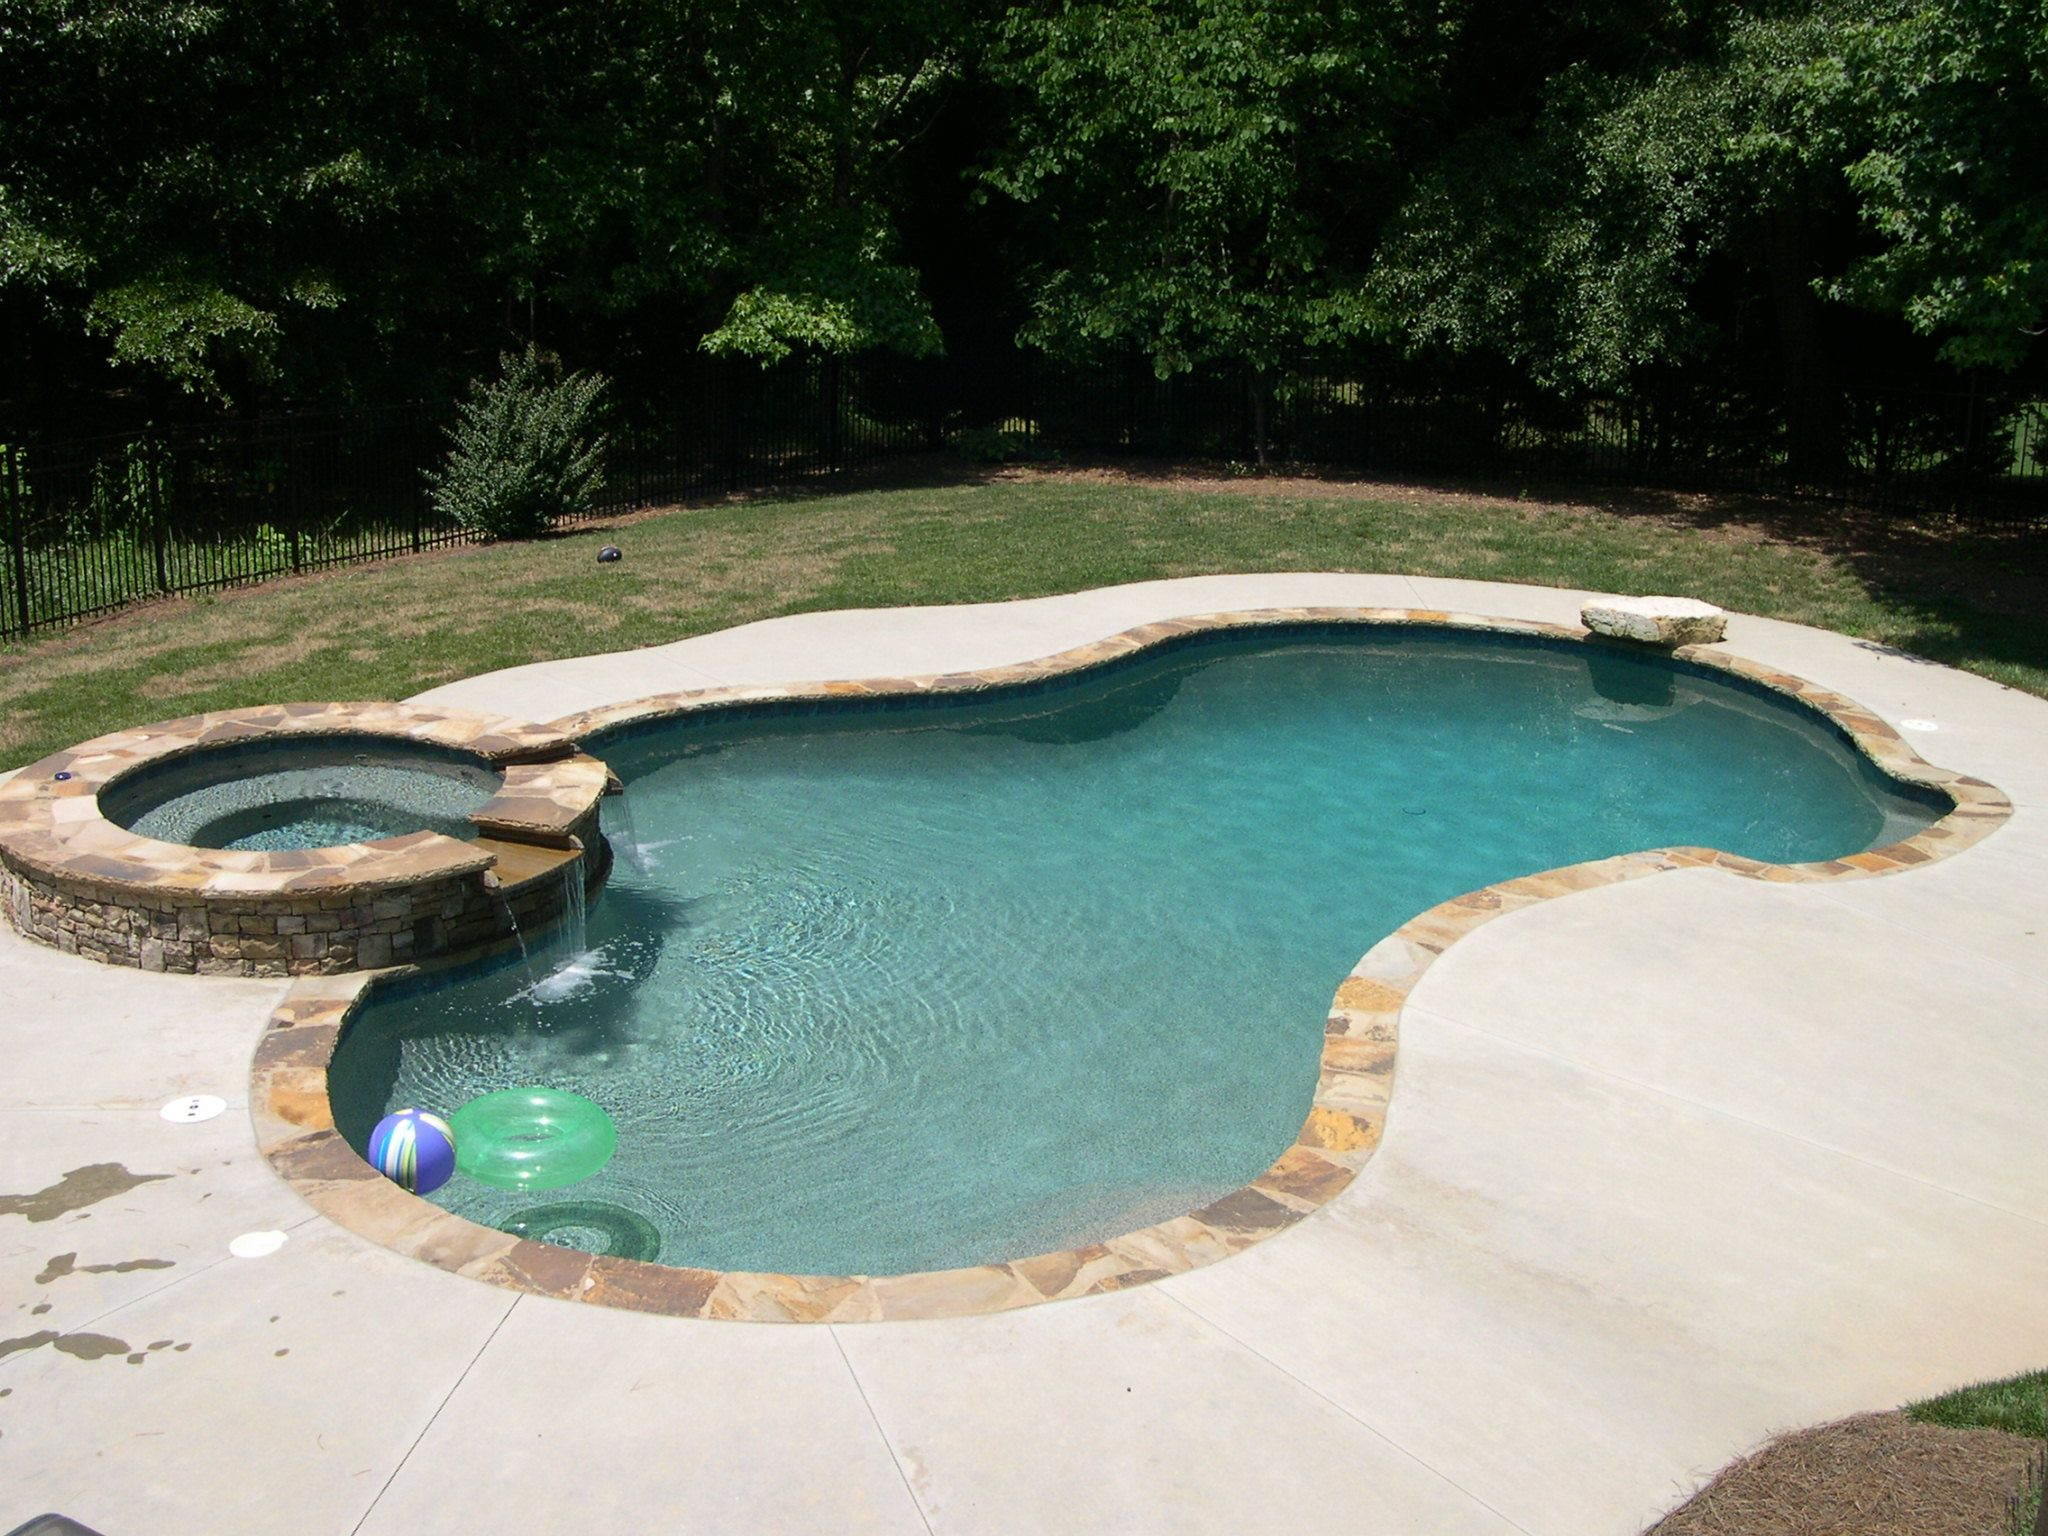 Pool Designs And Cost large size of pool58 knockout lap pool designs swimming design residential dimensions indoor standards Designs For Small Yards Small Pool Designs Perth And Swimming Pools